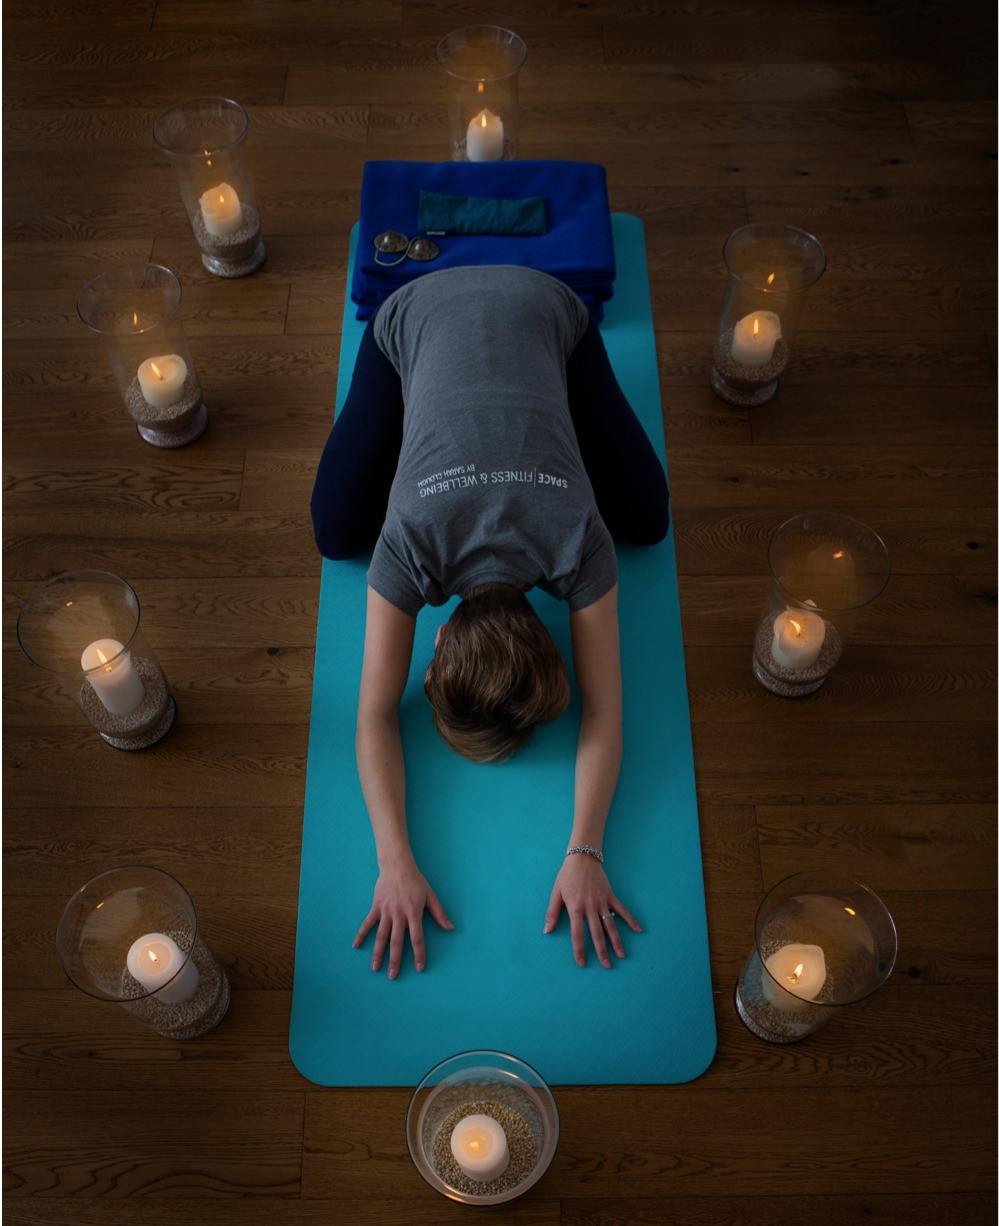 The Alternative Christmas Gift, a voucher for Candlelit Yoga Session